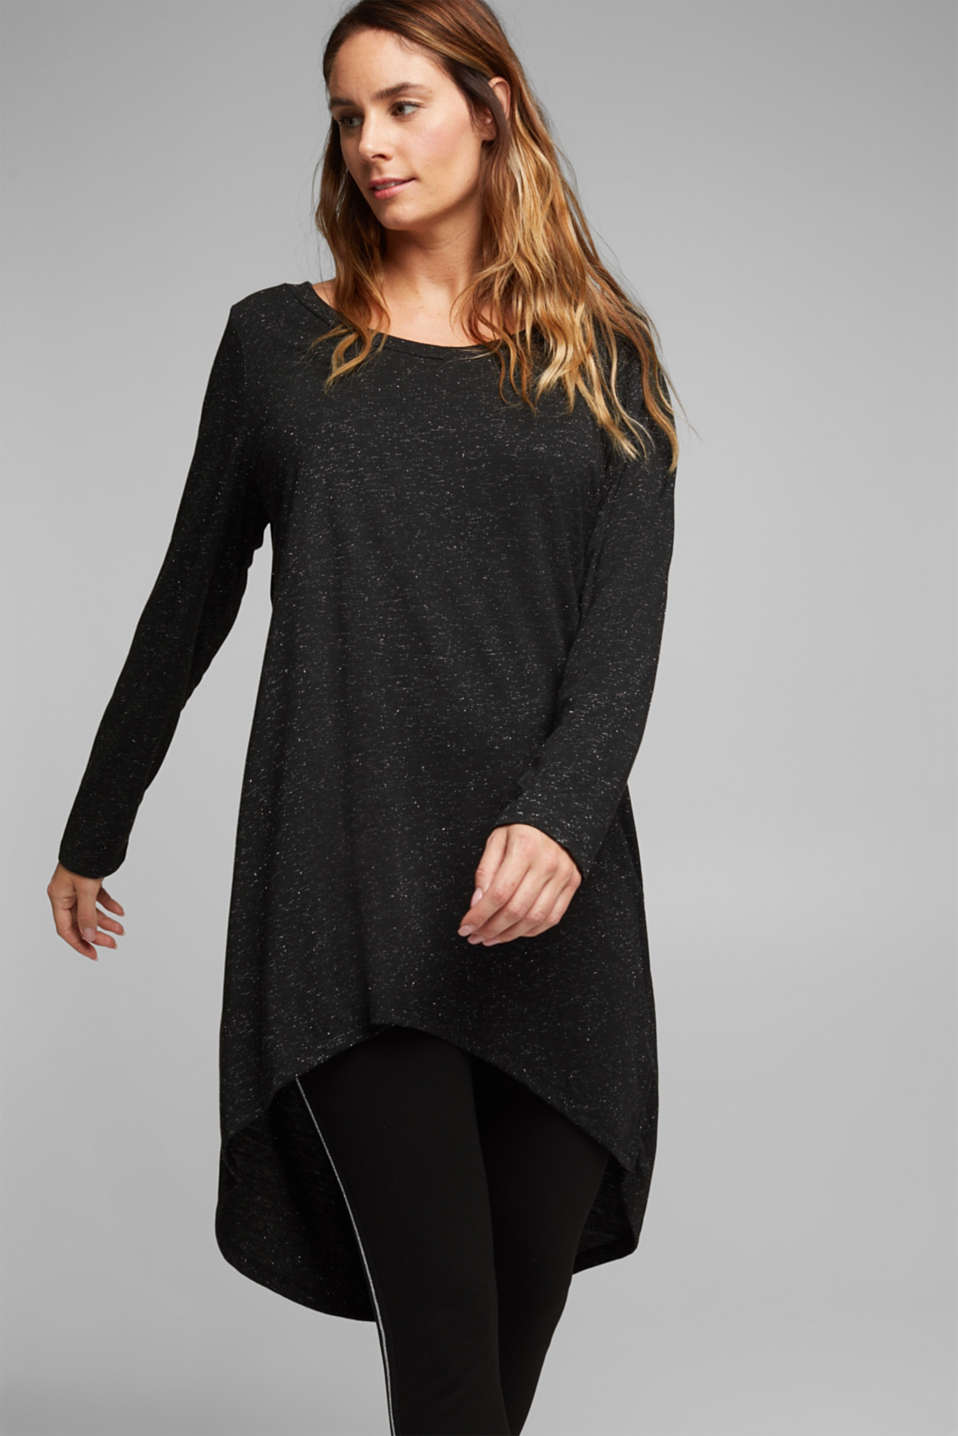 Esprit - Long, long sleeve top with a glittering finish